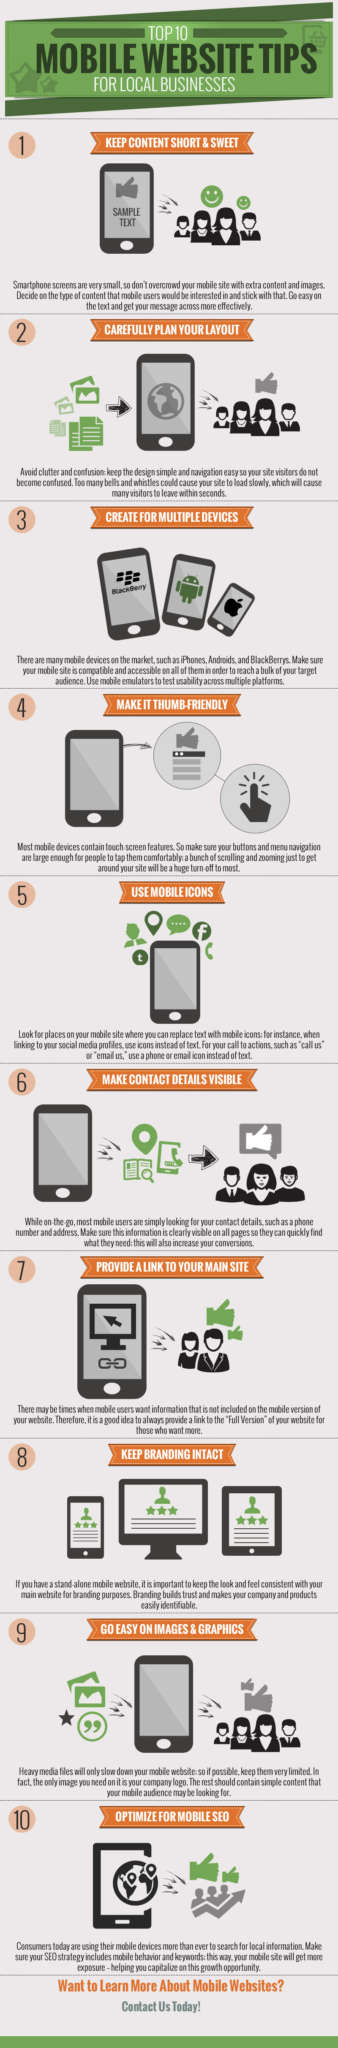 top 10 mobile website tips